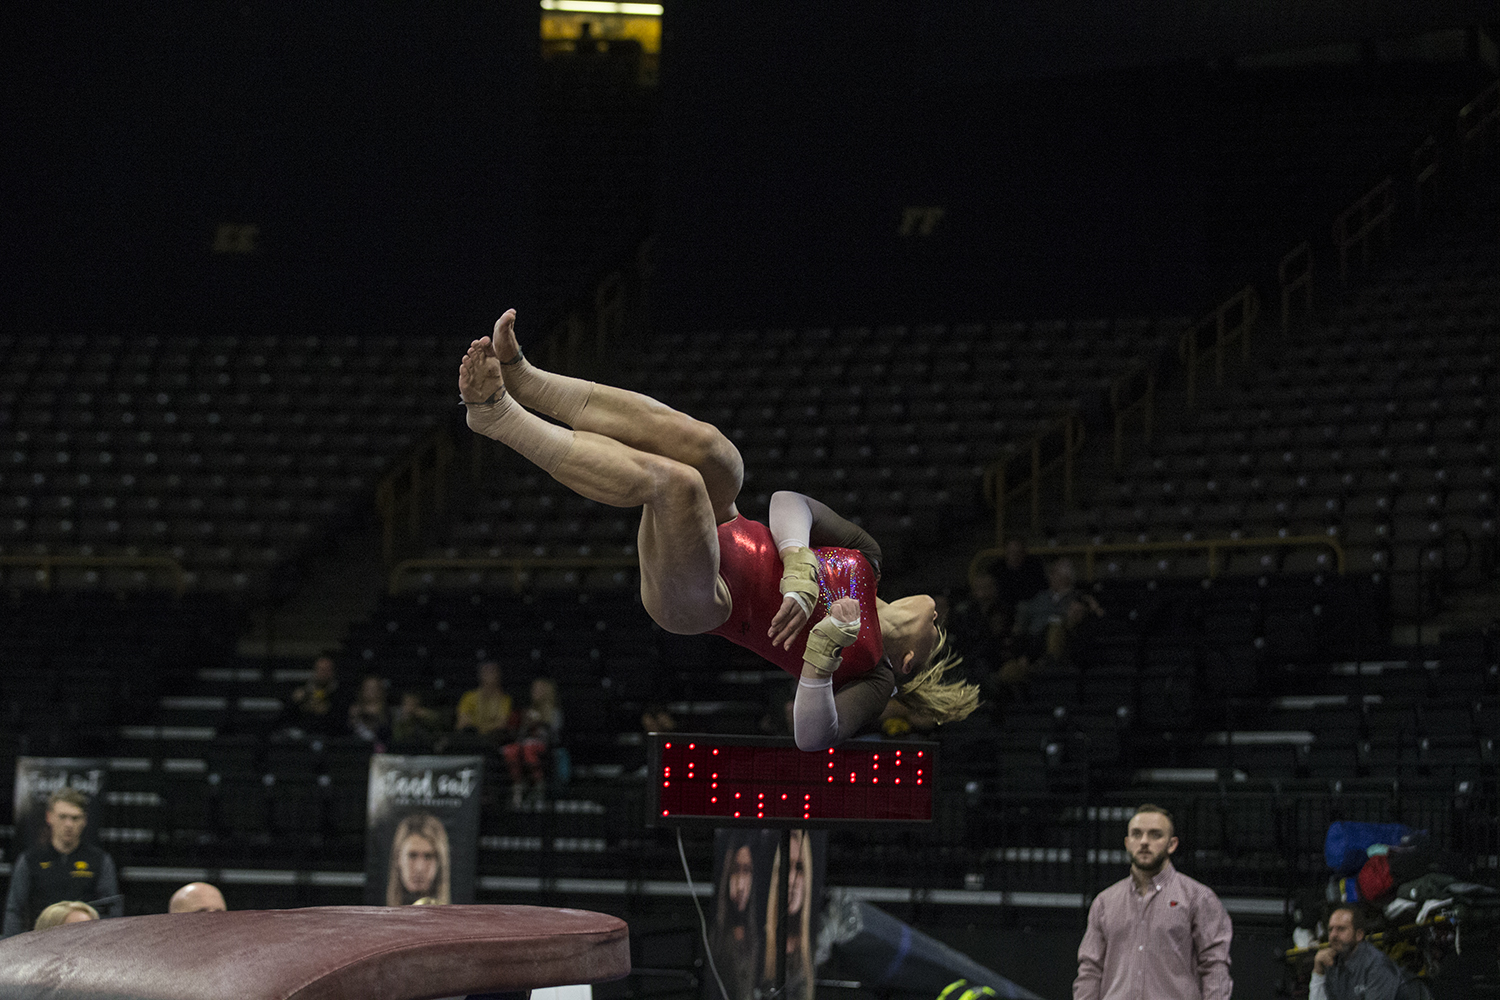 During women's gymnastics vs. SEMO at Carver-Hawkeye Arena on Friday, January 11, 2019, SEMO gymnast, Mackenzie Slee, vaults.